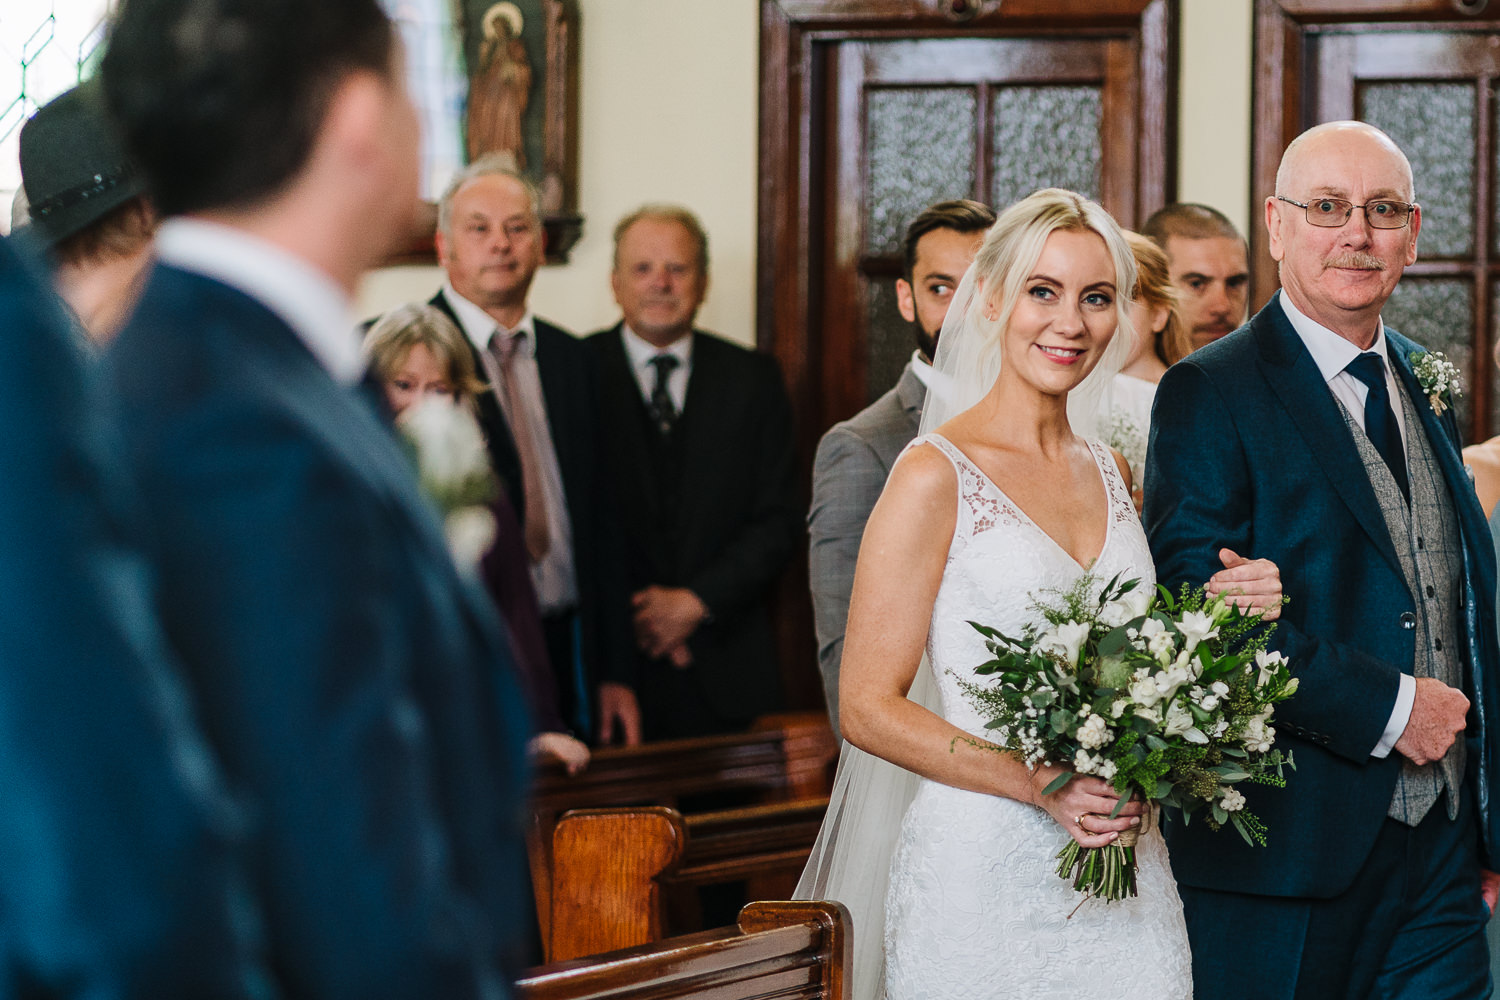 Bride walking in with her da